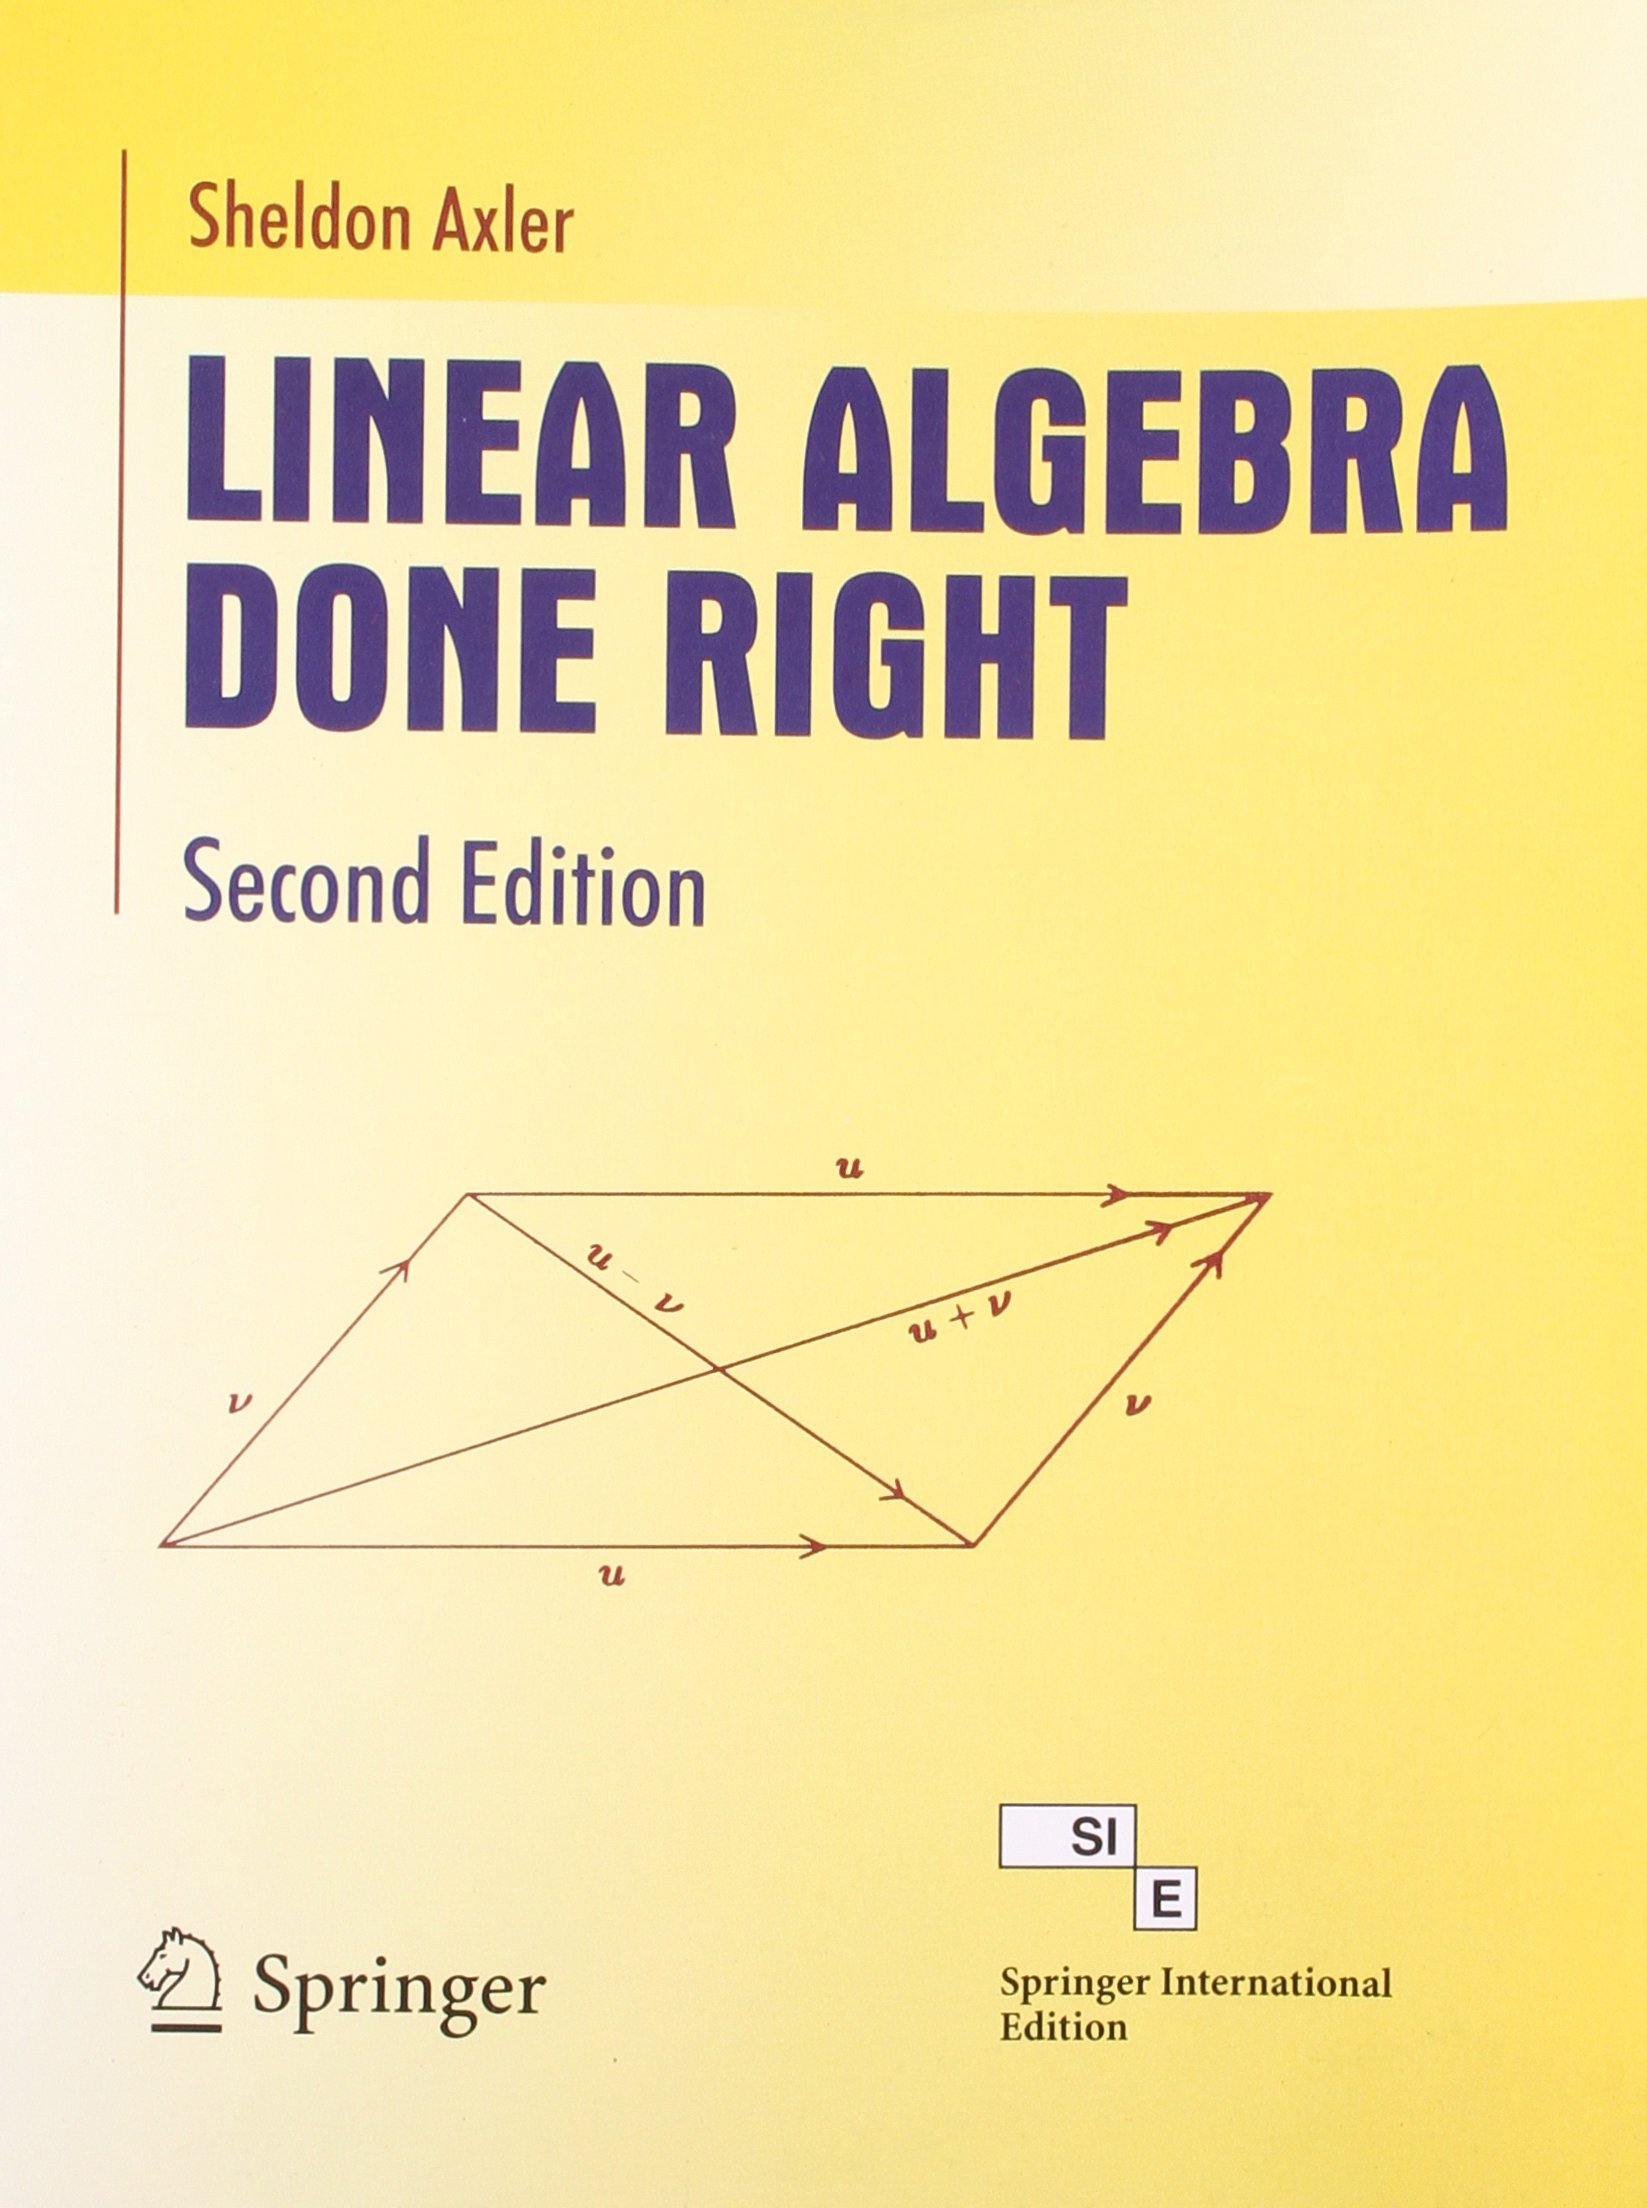 Buy Linear Algebra Done Right Book Online at Low Prices in India | Linear  Algebra Done Right Reviews & Ratings - Amazon.in